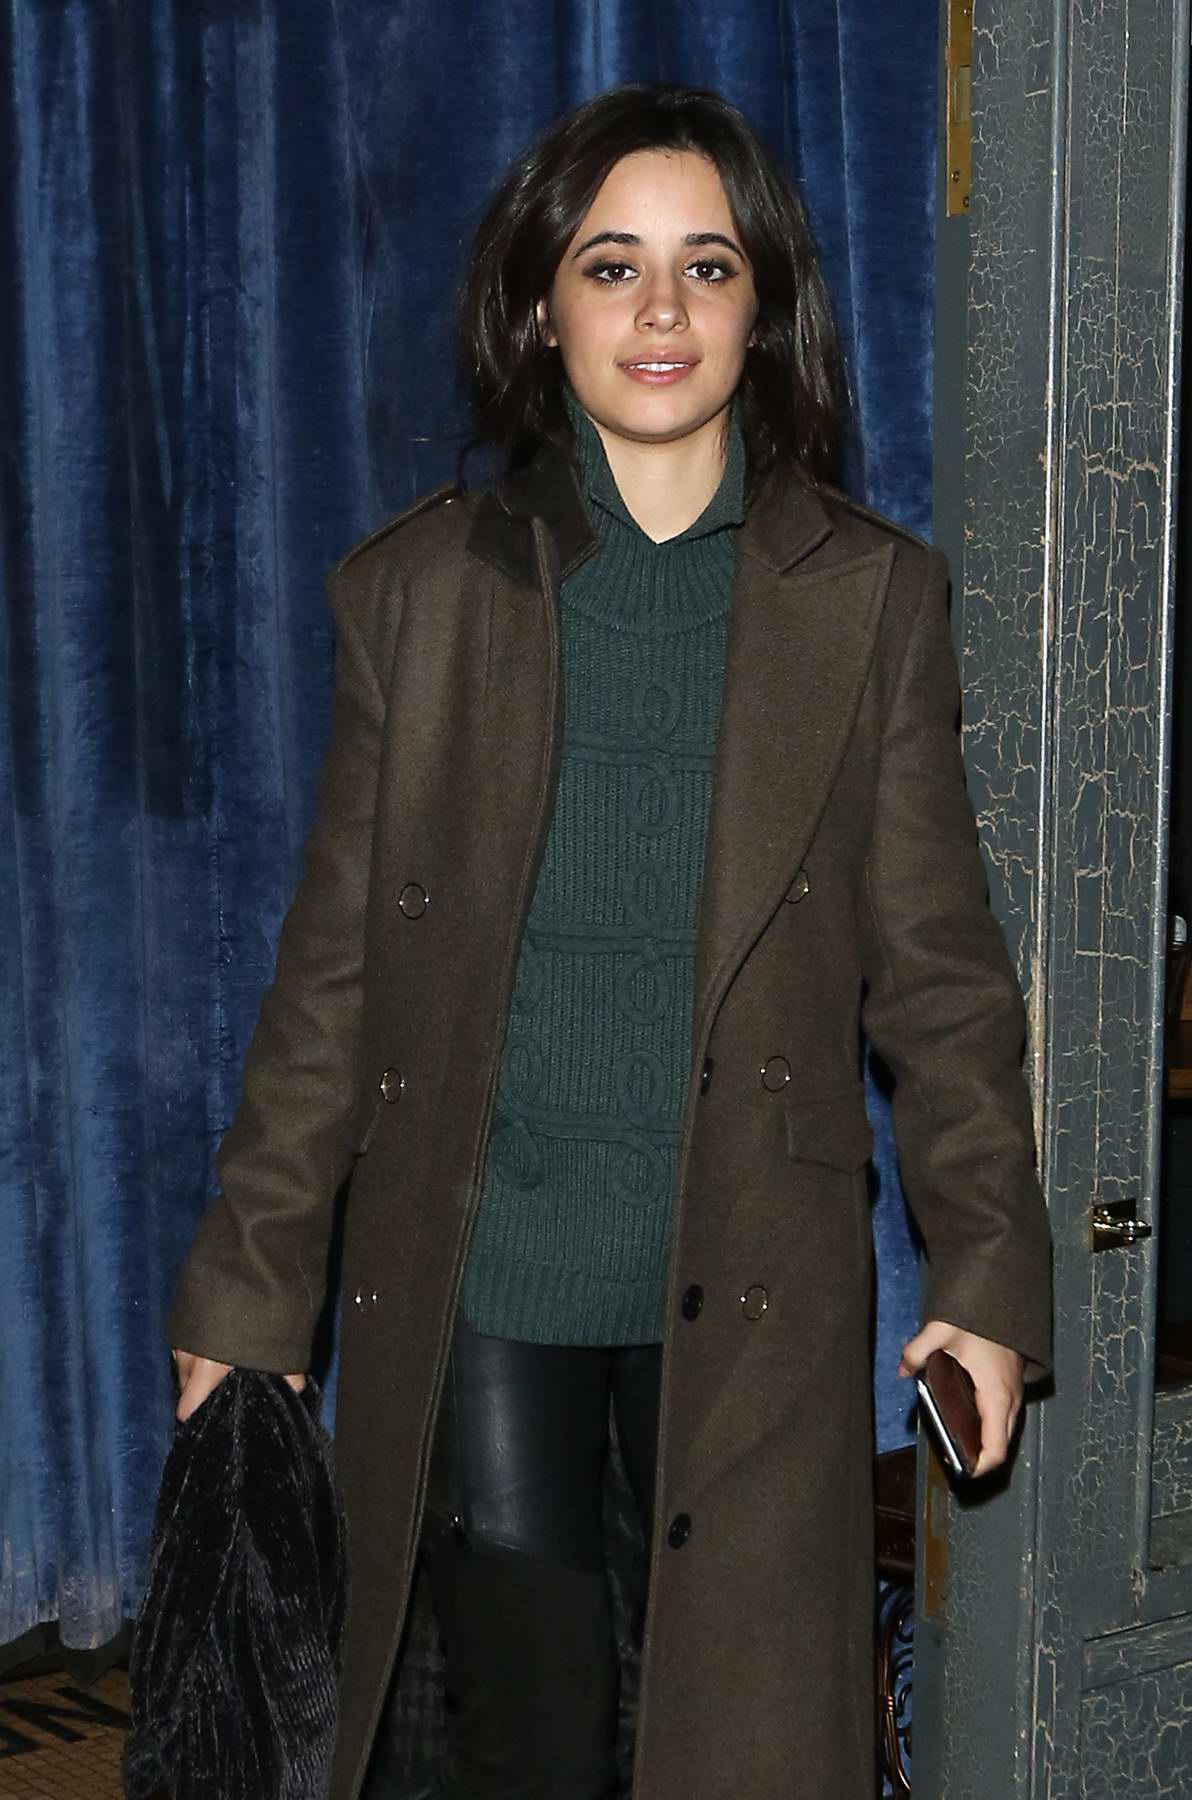 Camila Cabello leaves Balans SoHo Society restaurant at 2 AM after MTV EMA's in London